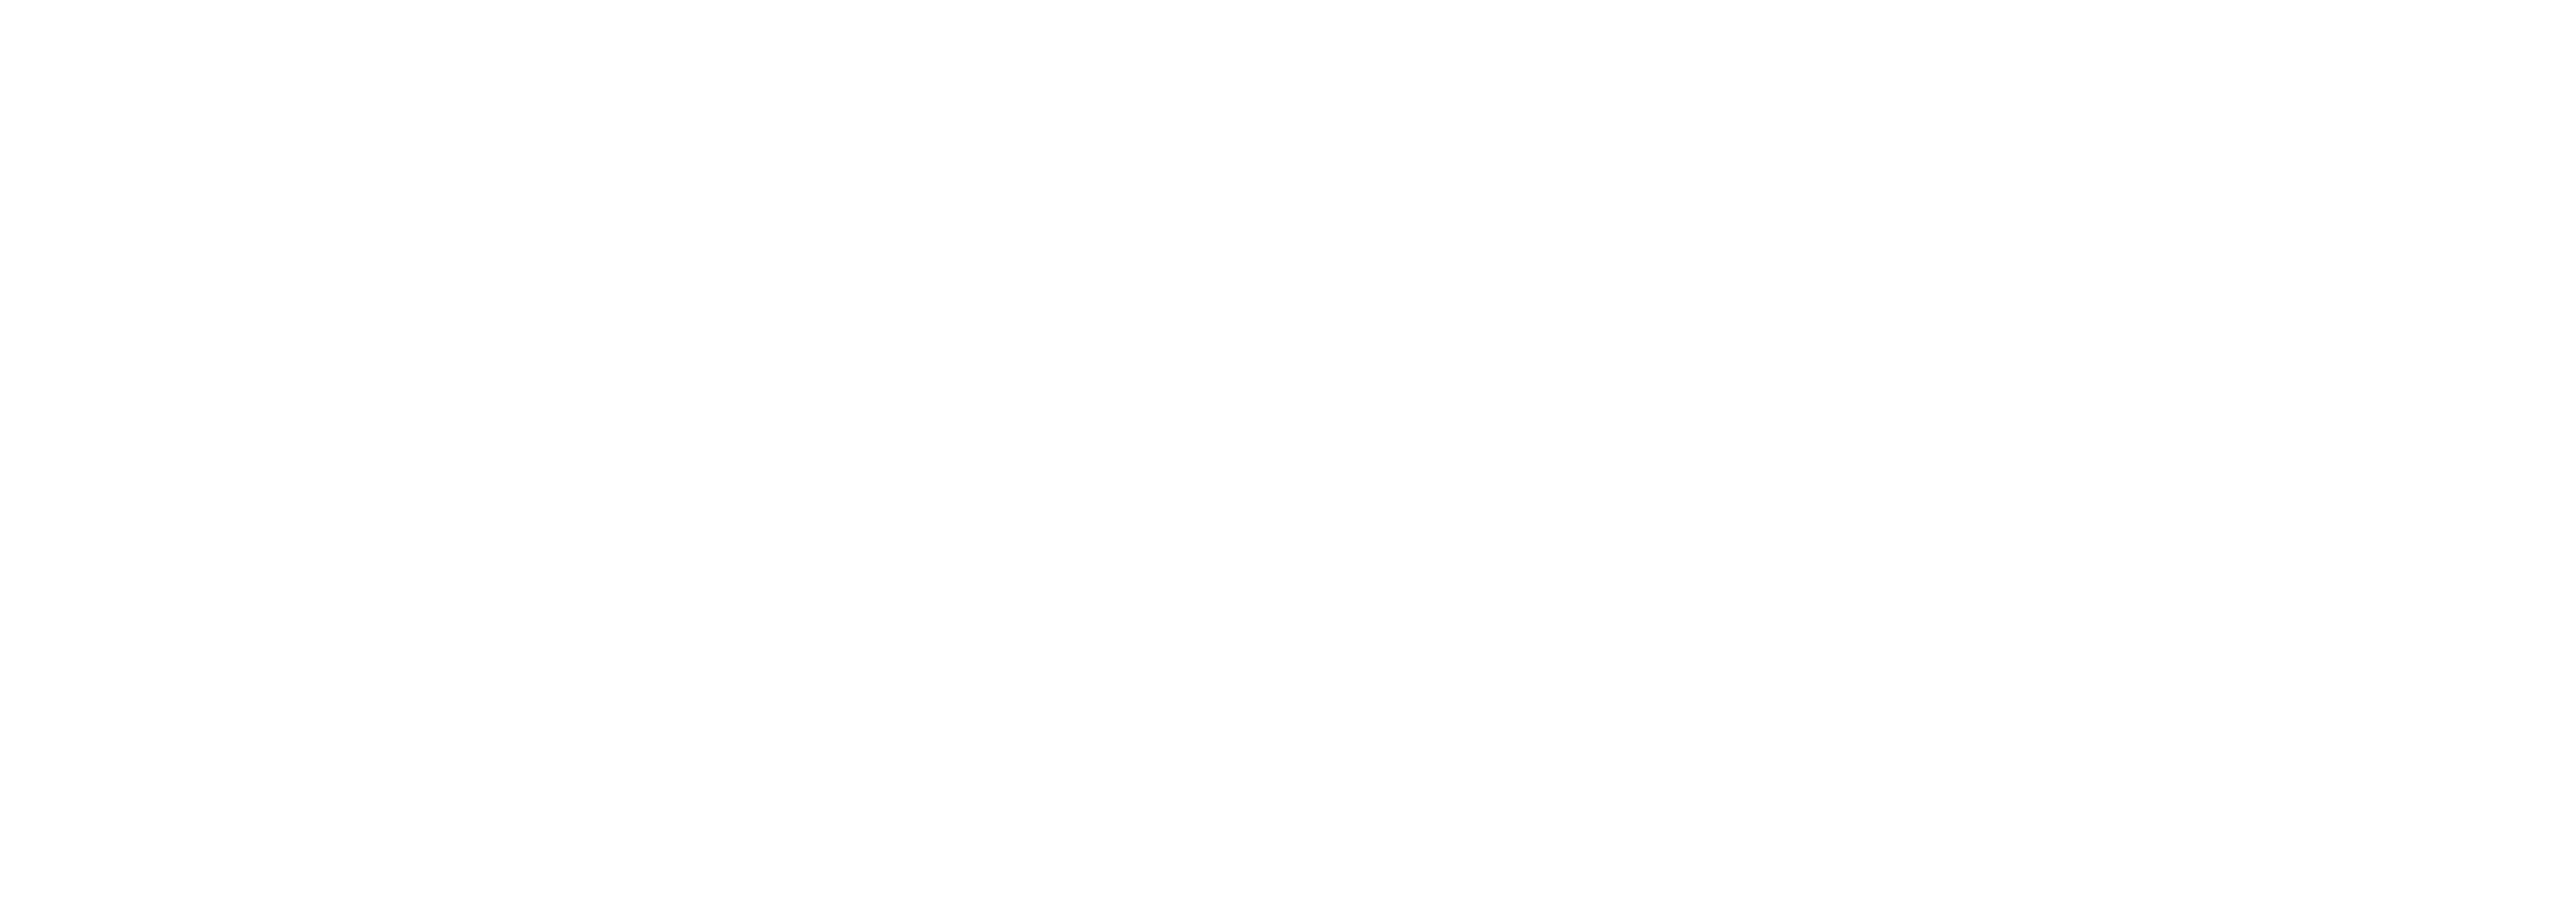 fitsteps for life